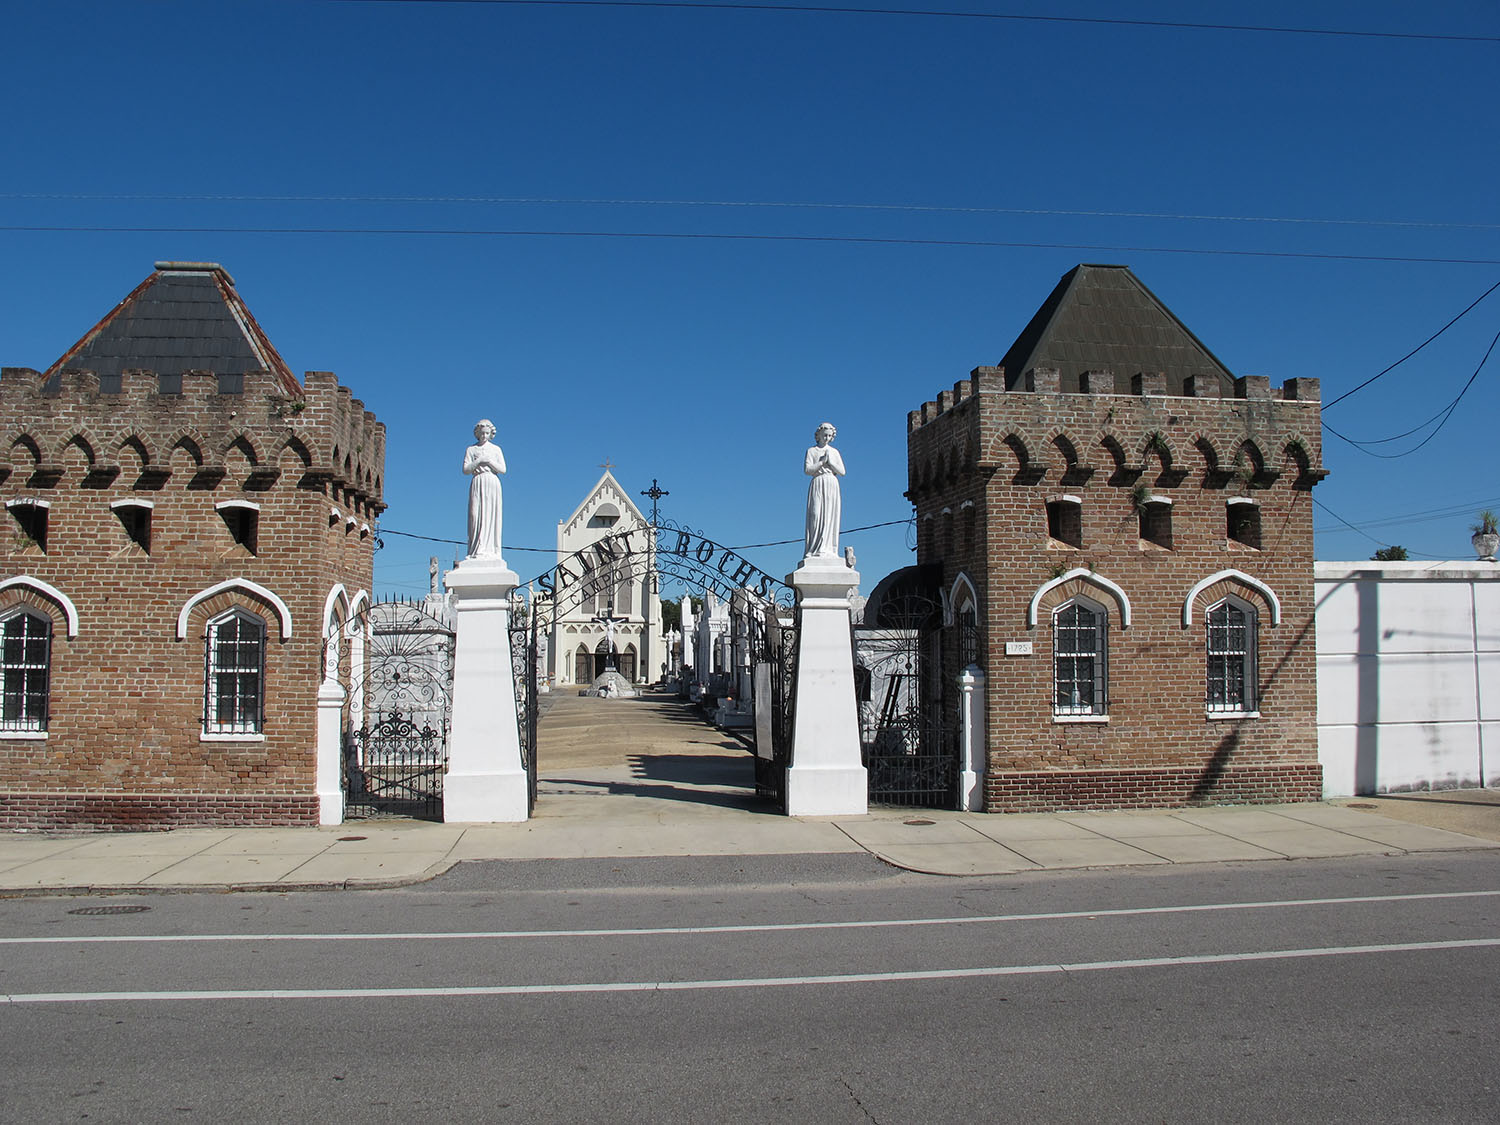 Entrance to St. Roch Cemetery Number 1, with the Shrine of St. Roch in the background